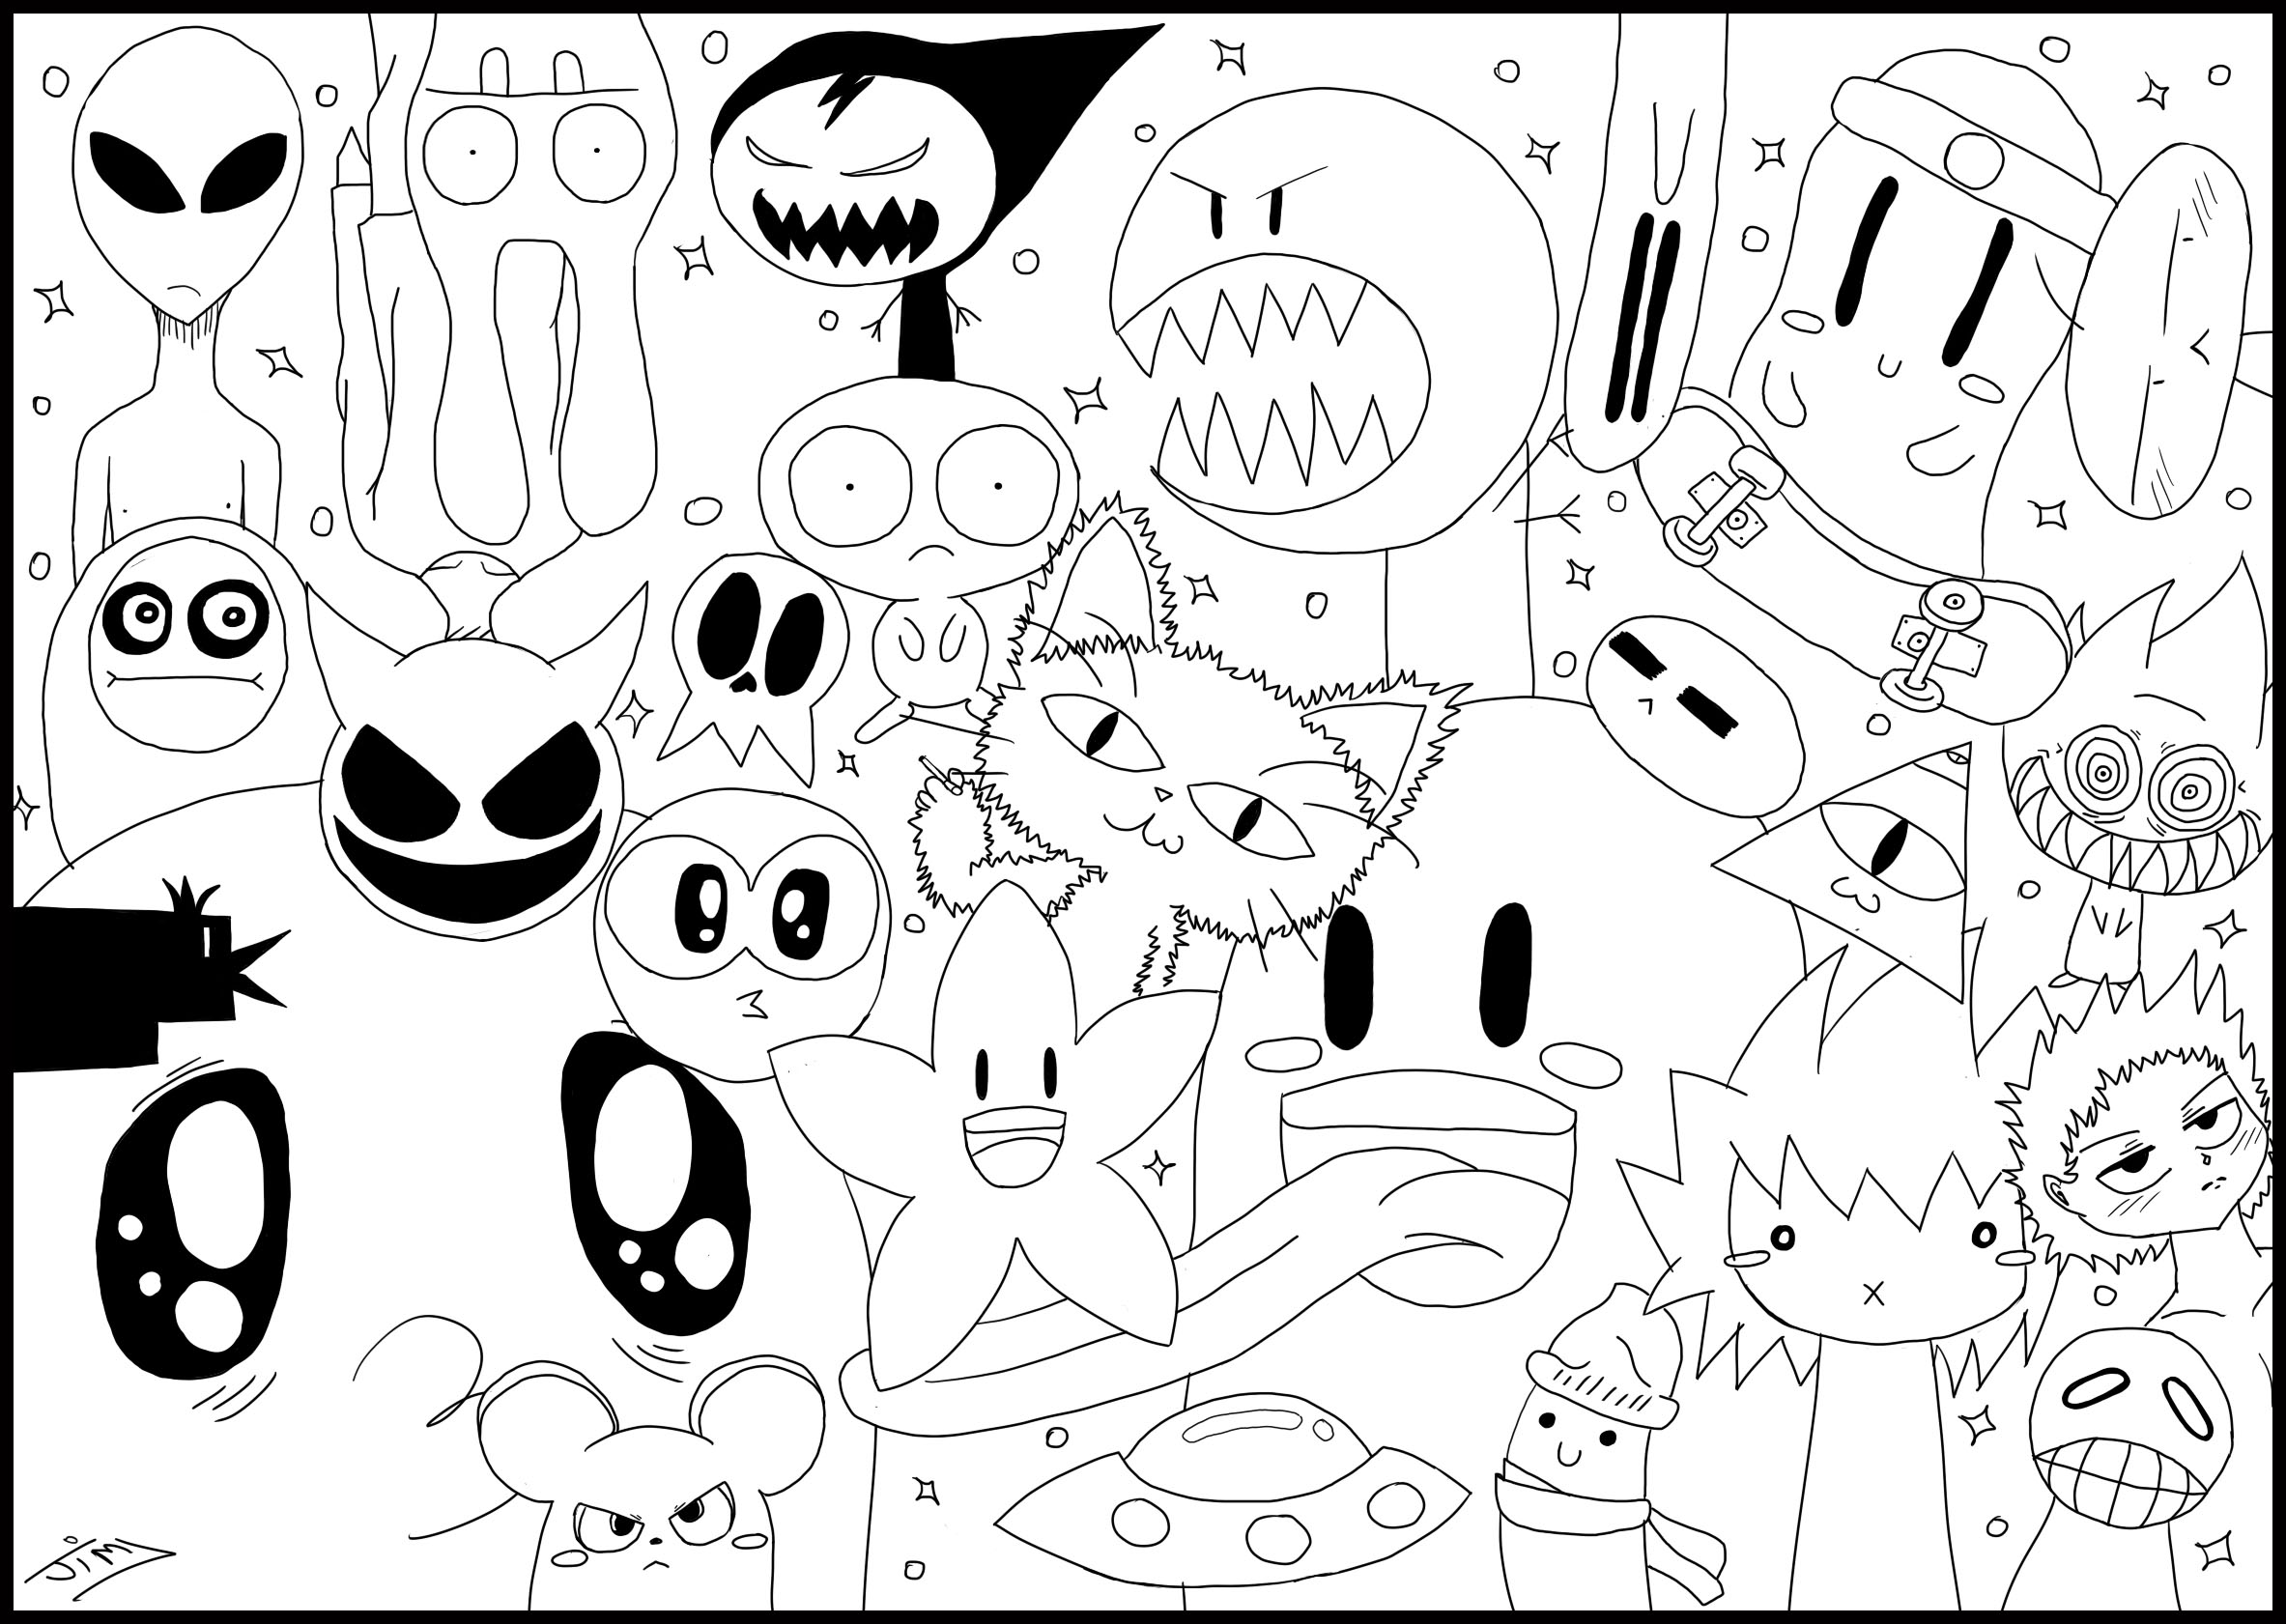 1176x1600 5 Brilliant Monster Coloring Pages 2366x1681 A Doodle Drawing With Funny Or Scary Monsters And Animals From